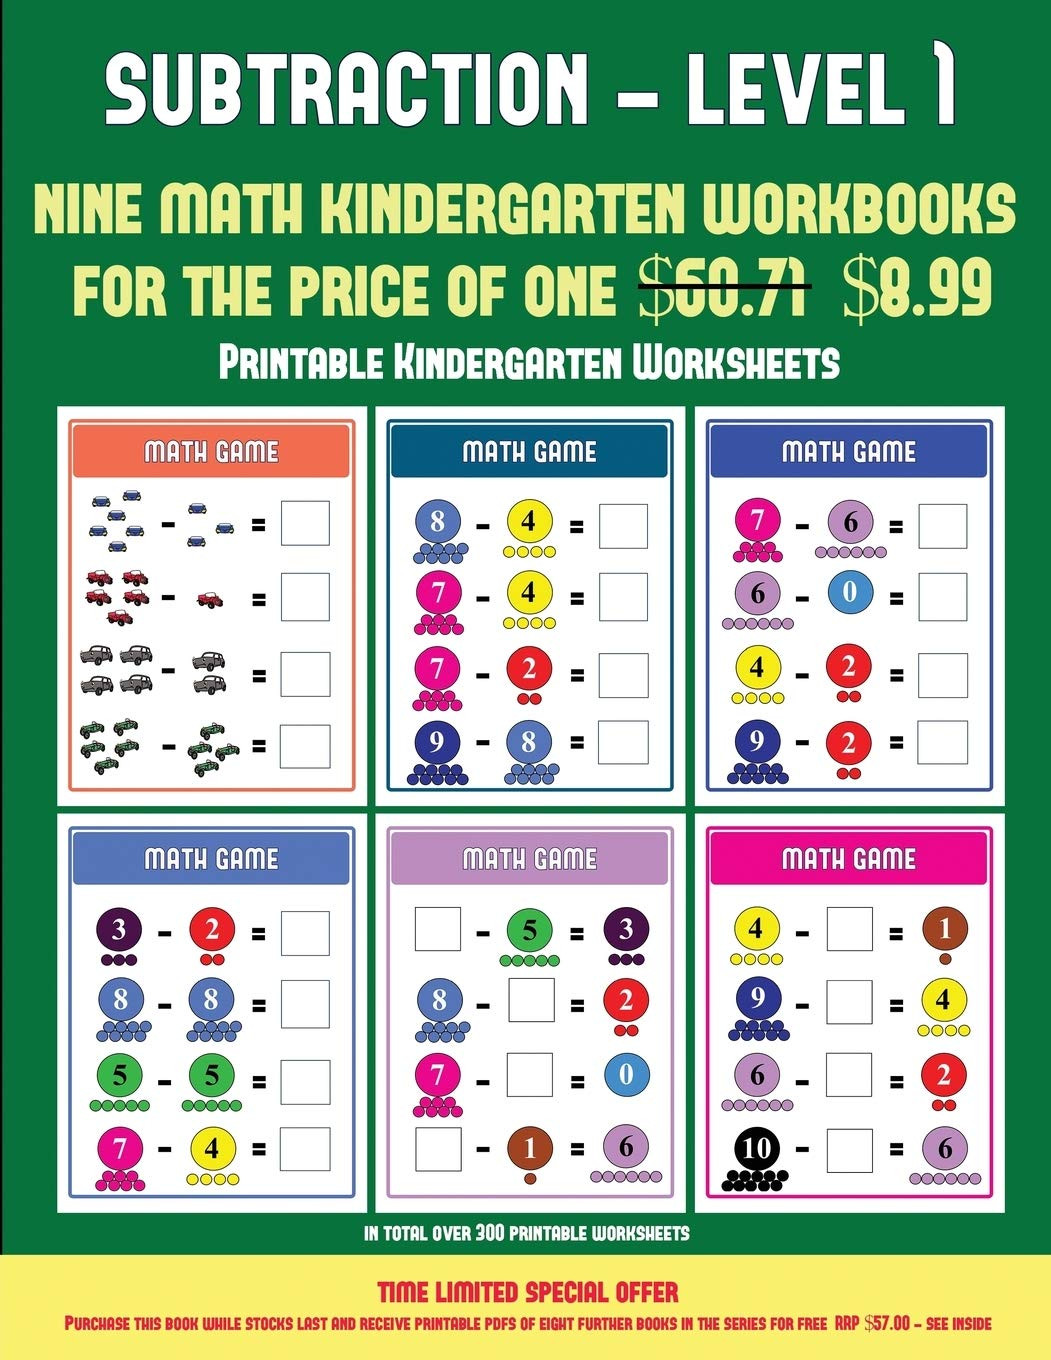 Kindergarten Subtraction Worksheets Free Printable Buy Printable Kindergarten Worksheets Kindergarten